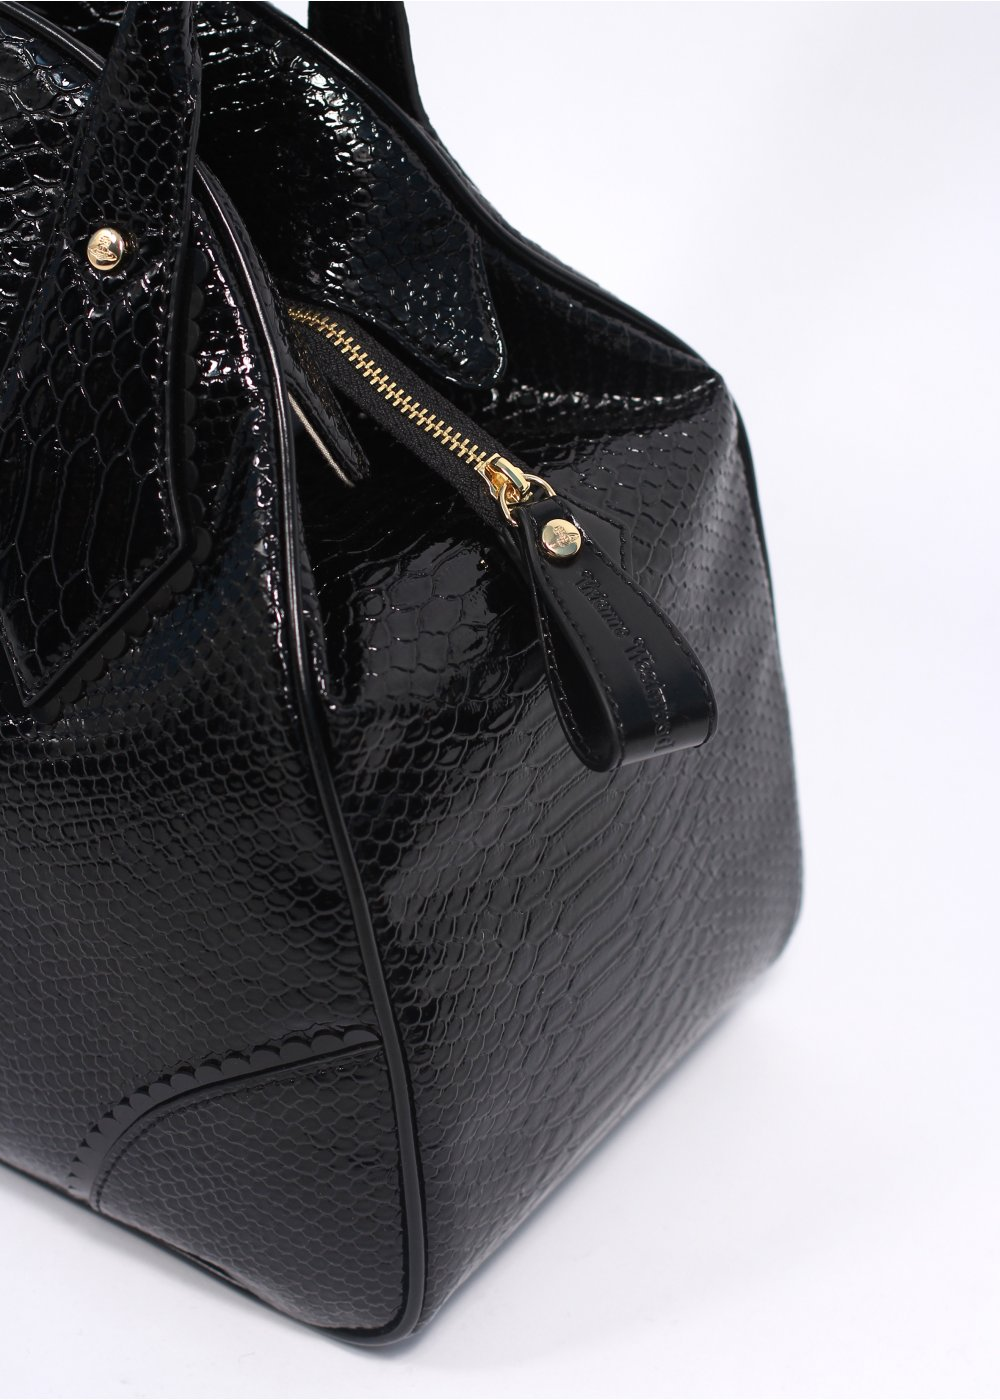 Vivienne Westwood Accessories Frilly Snake Bag Black, SS14